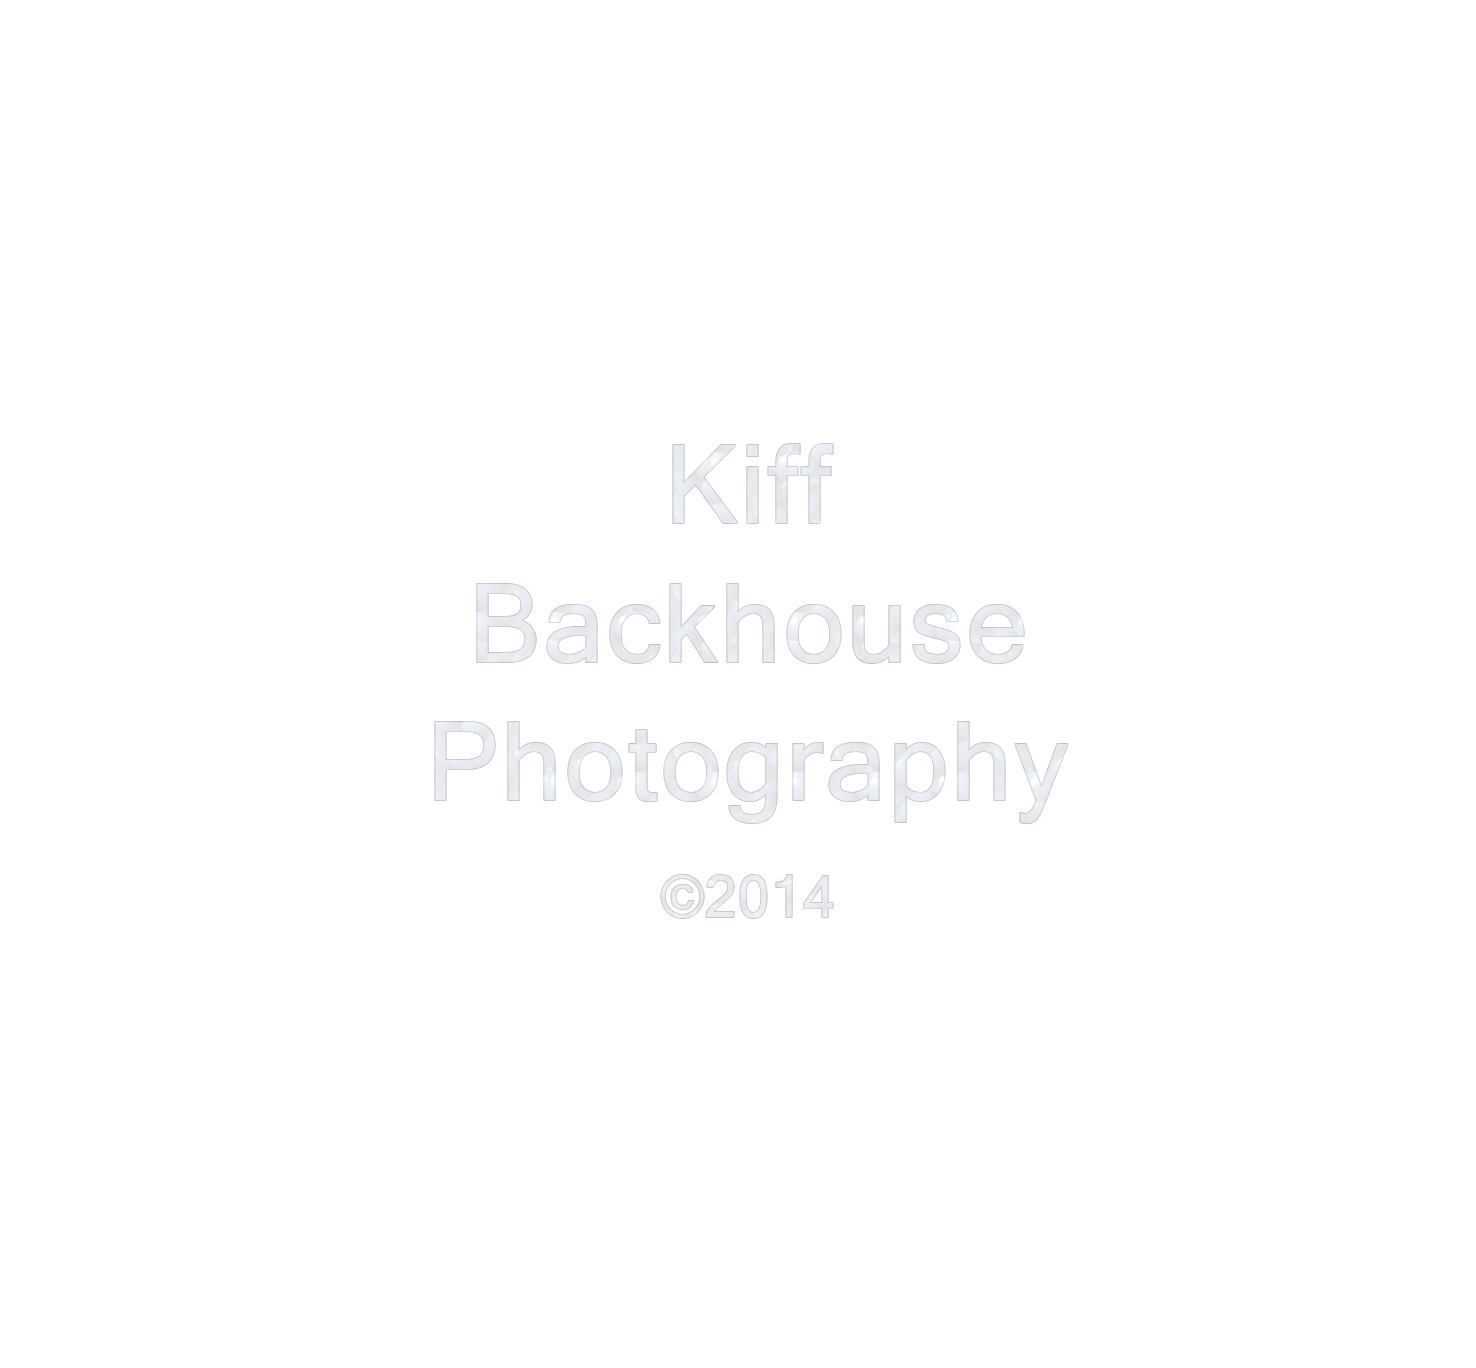 Kiff Backhouse Photography